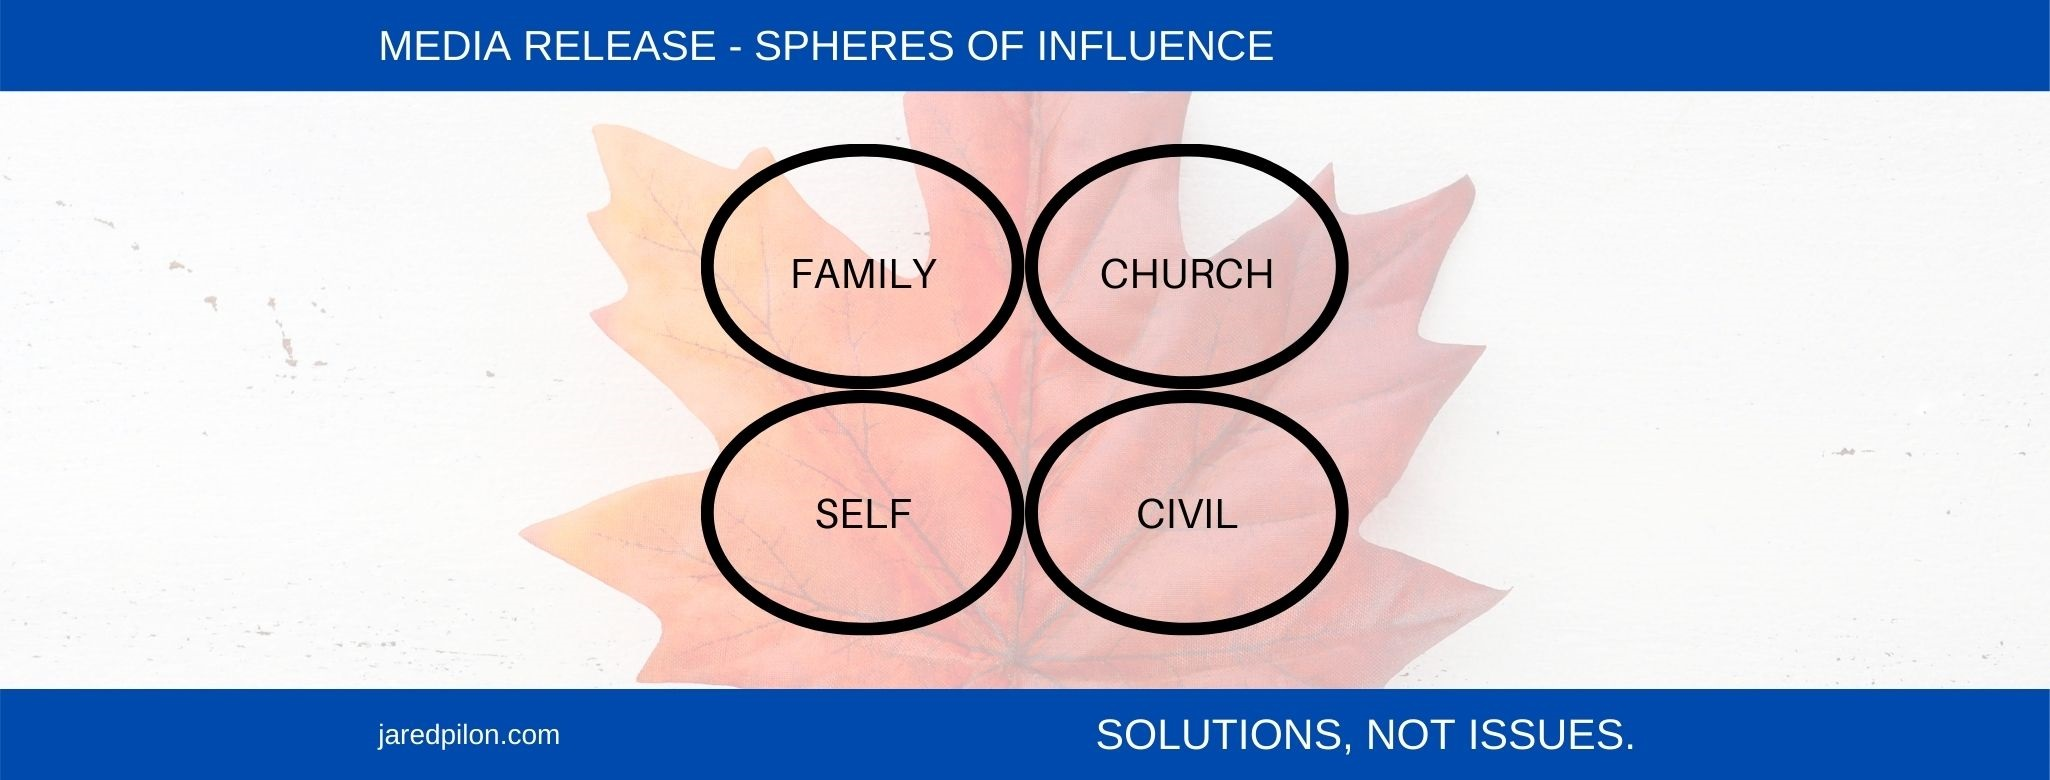 Spheres of Influence-Government